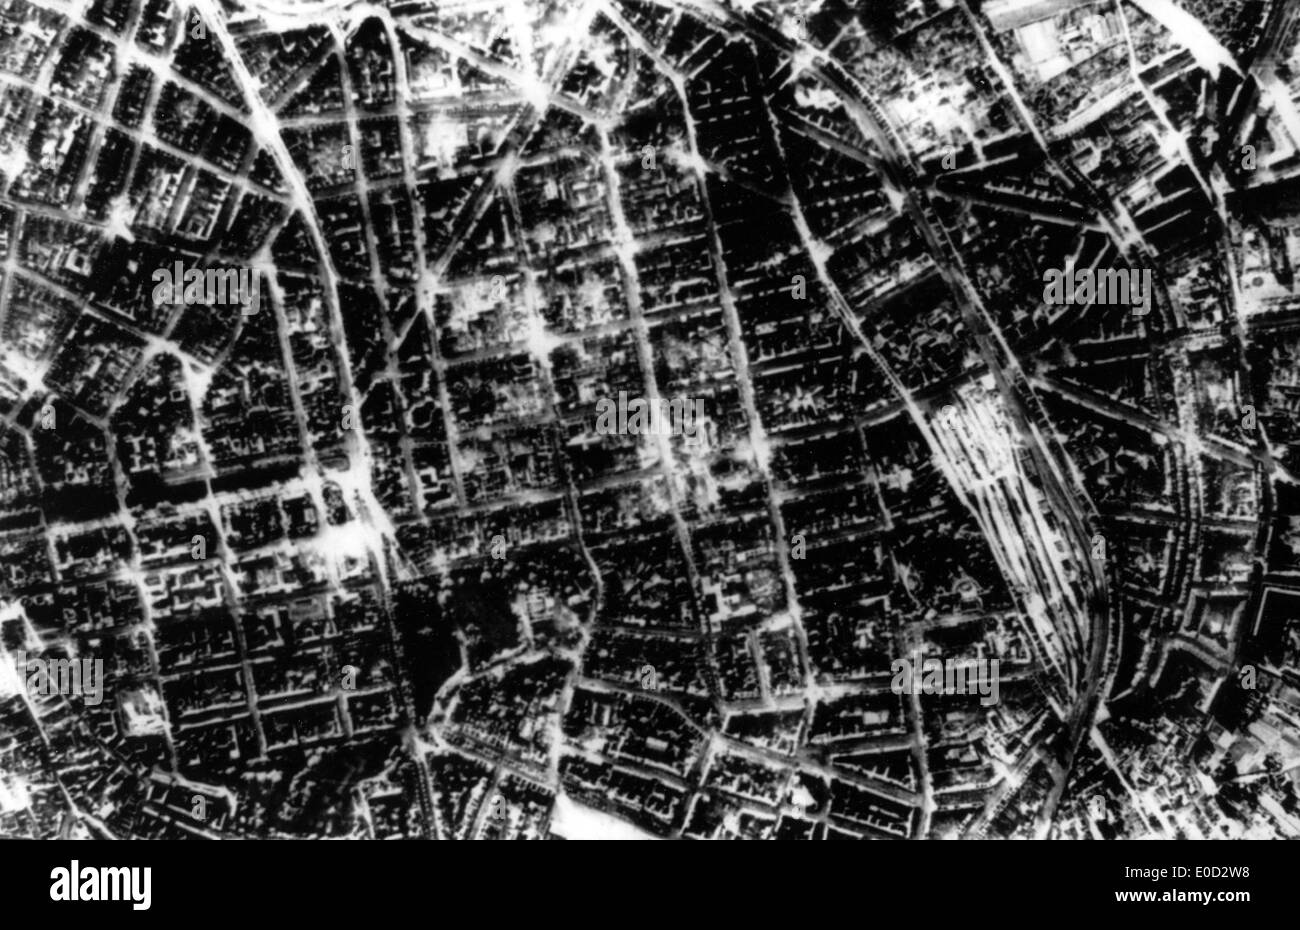 DUSSELDORF burned out after the RAF attack on 12 June 1943 - Stock Image